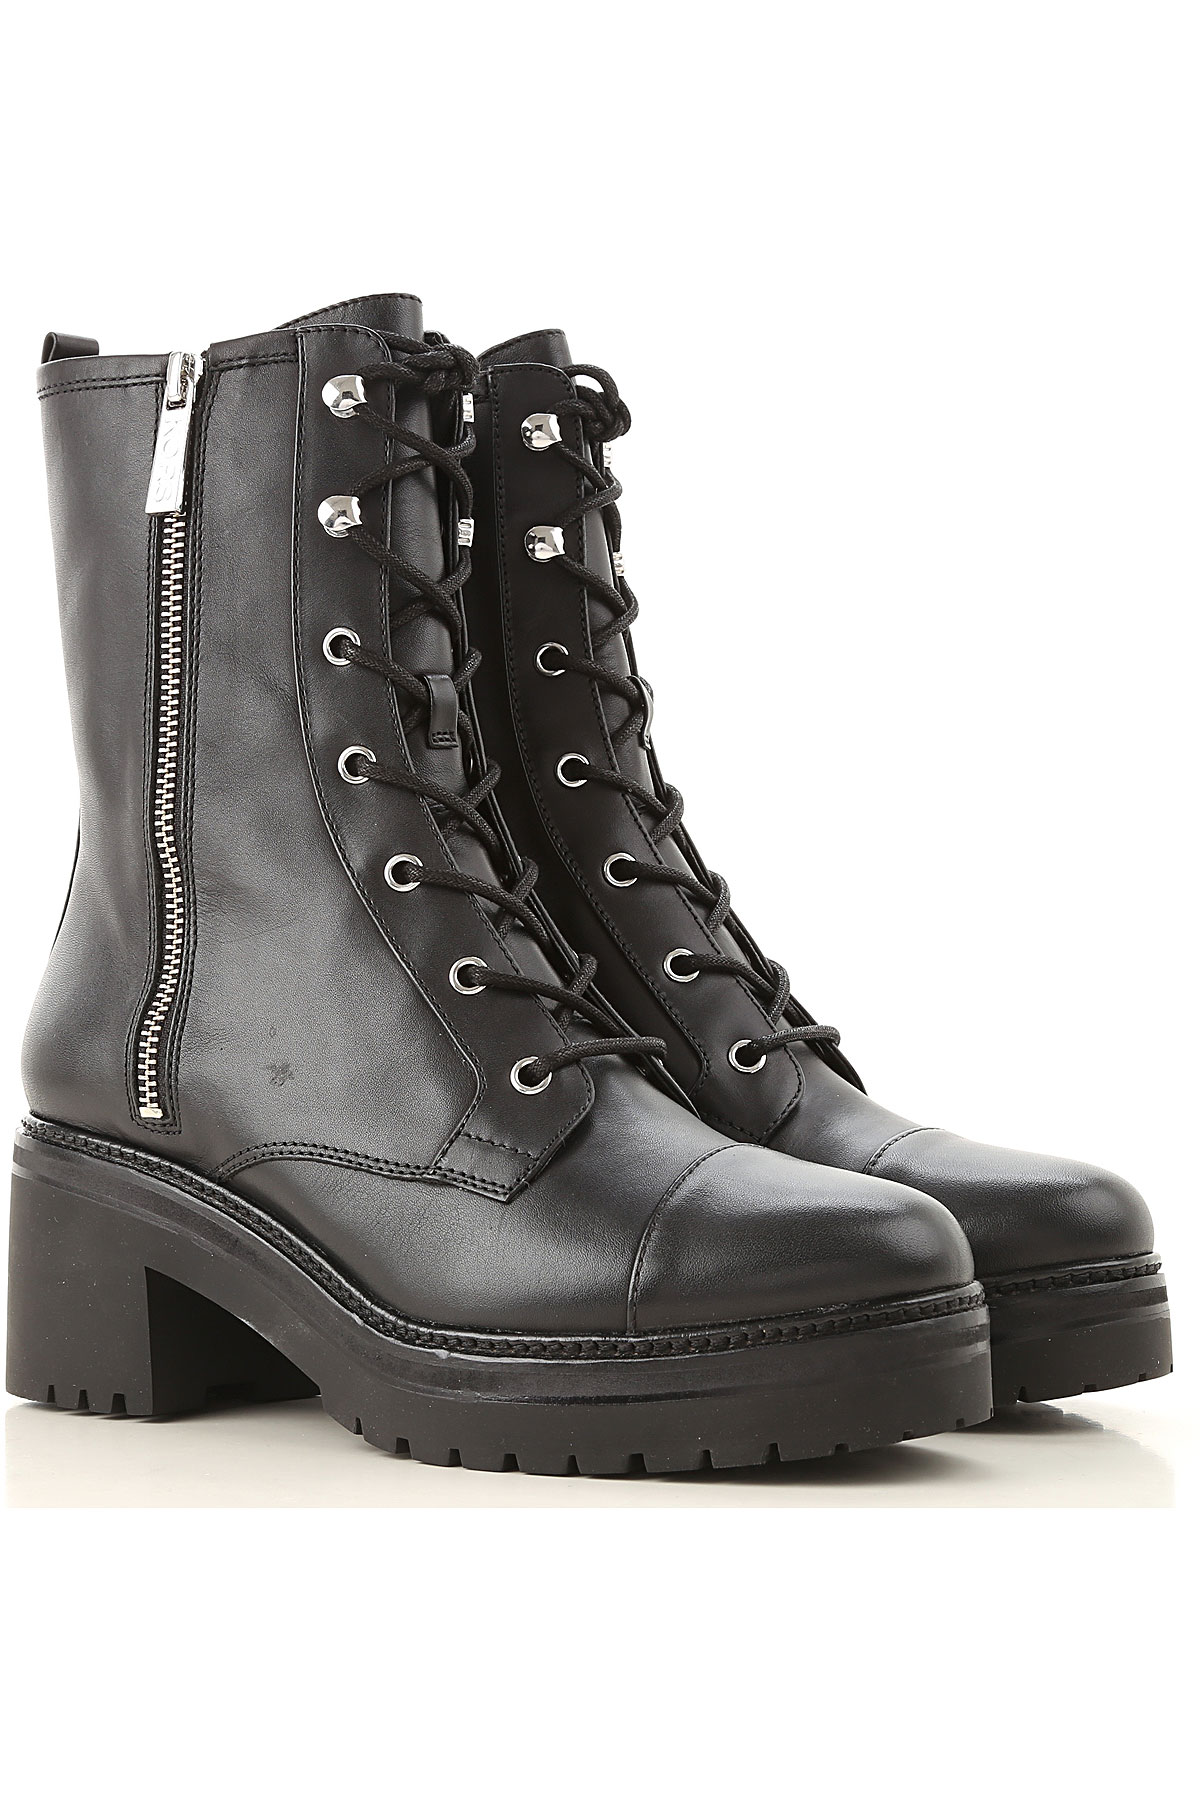 Michael Kors Boots for Women, Booties On Sale, Black, Leather, 2019, 10 6 7 8 9